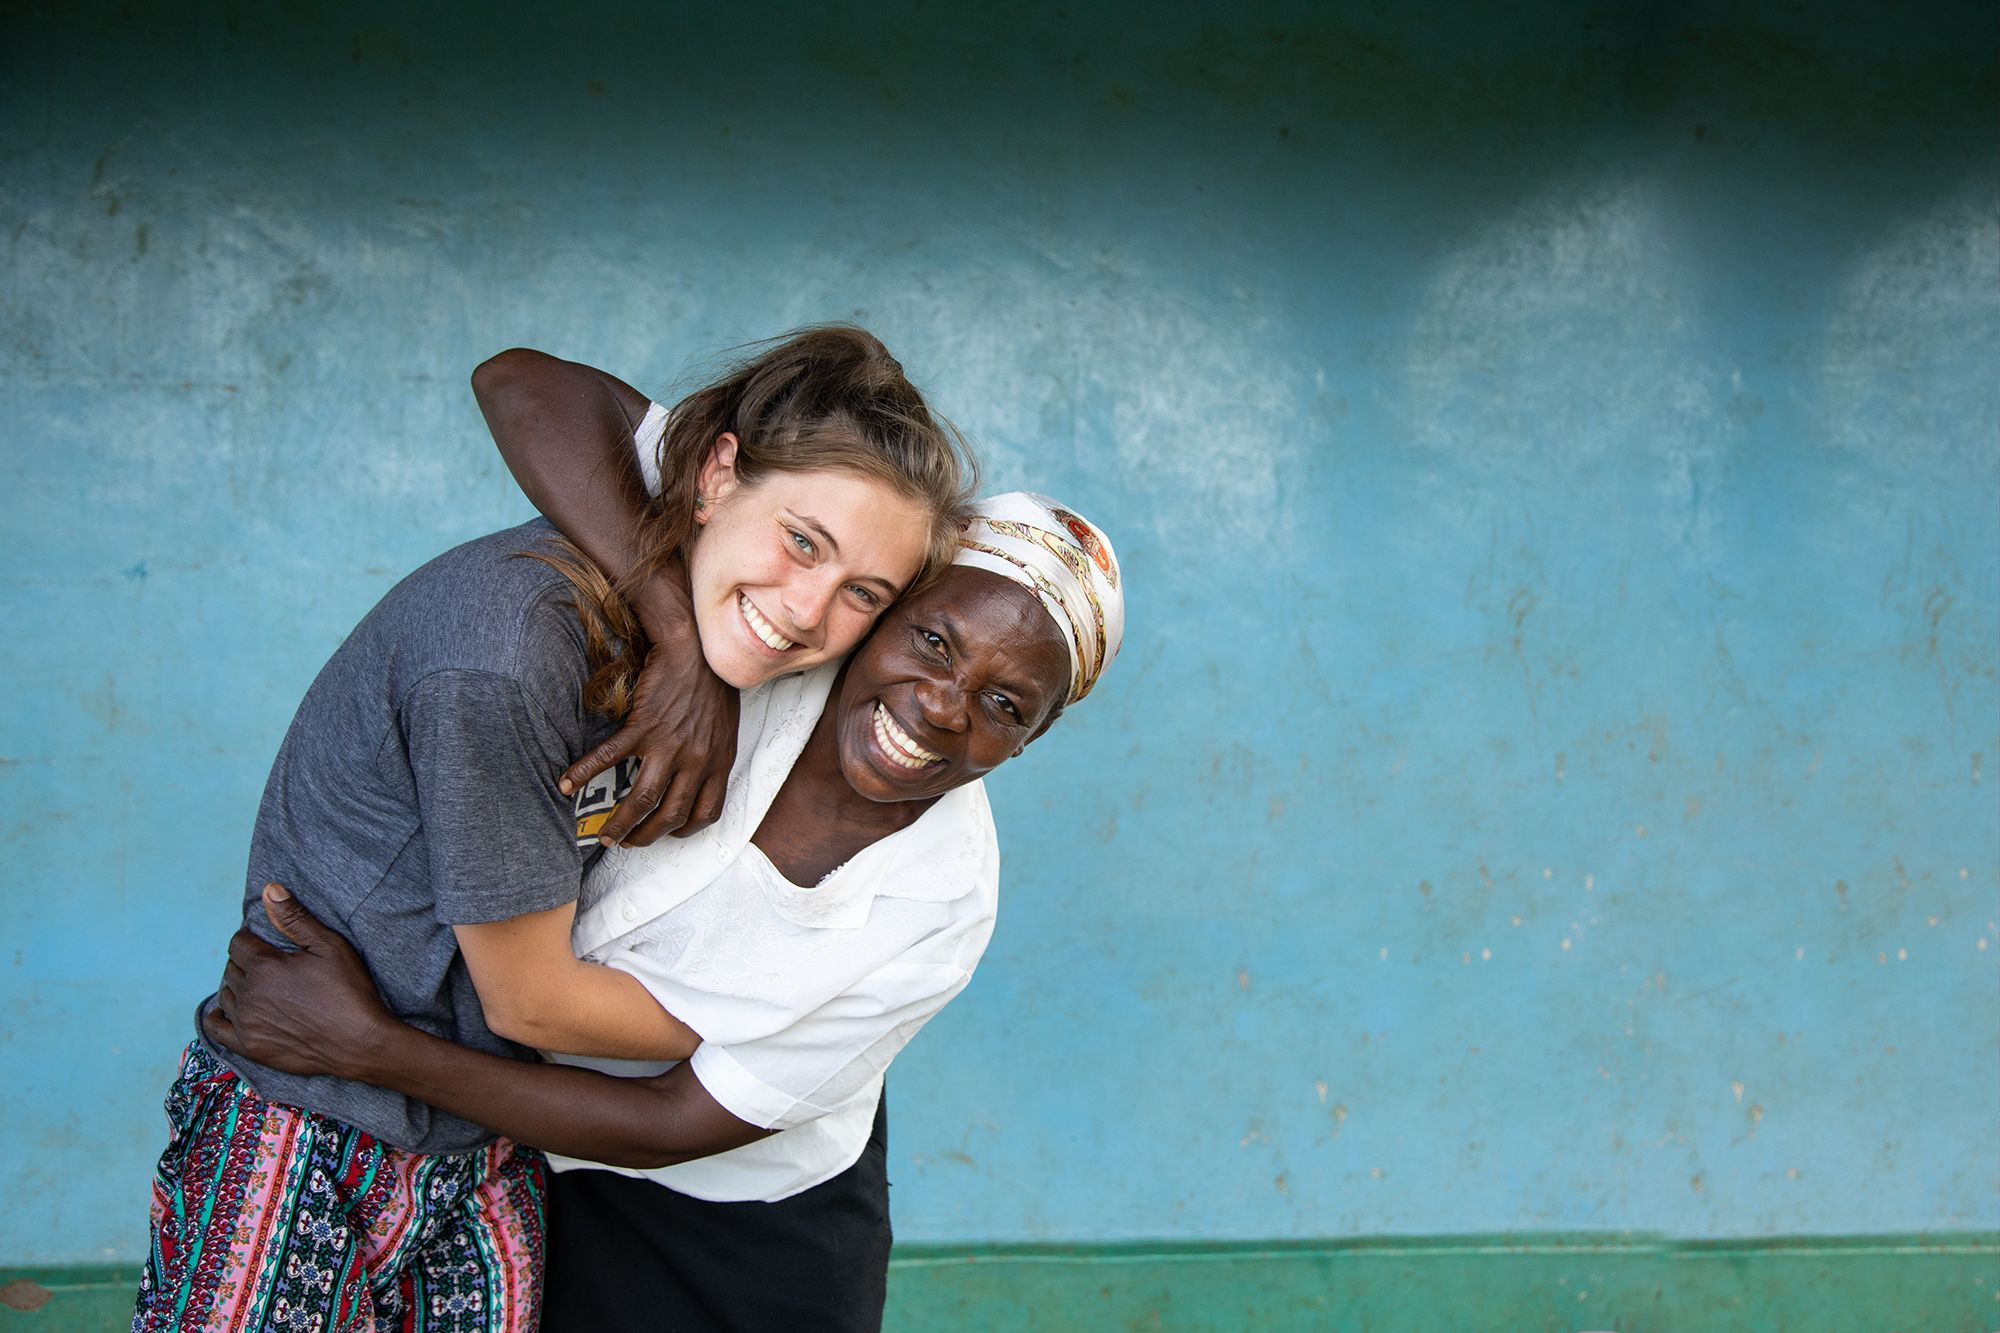 A student and a local Tanzanian embrace after forming a newfound connection.